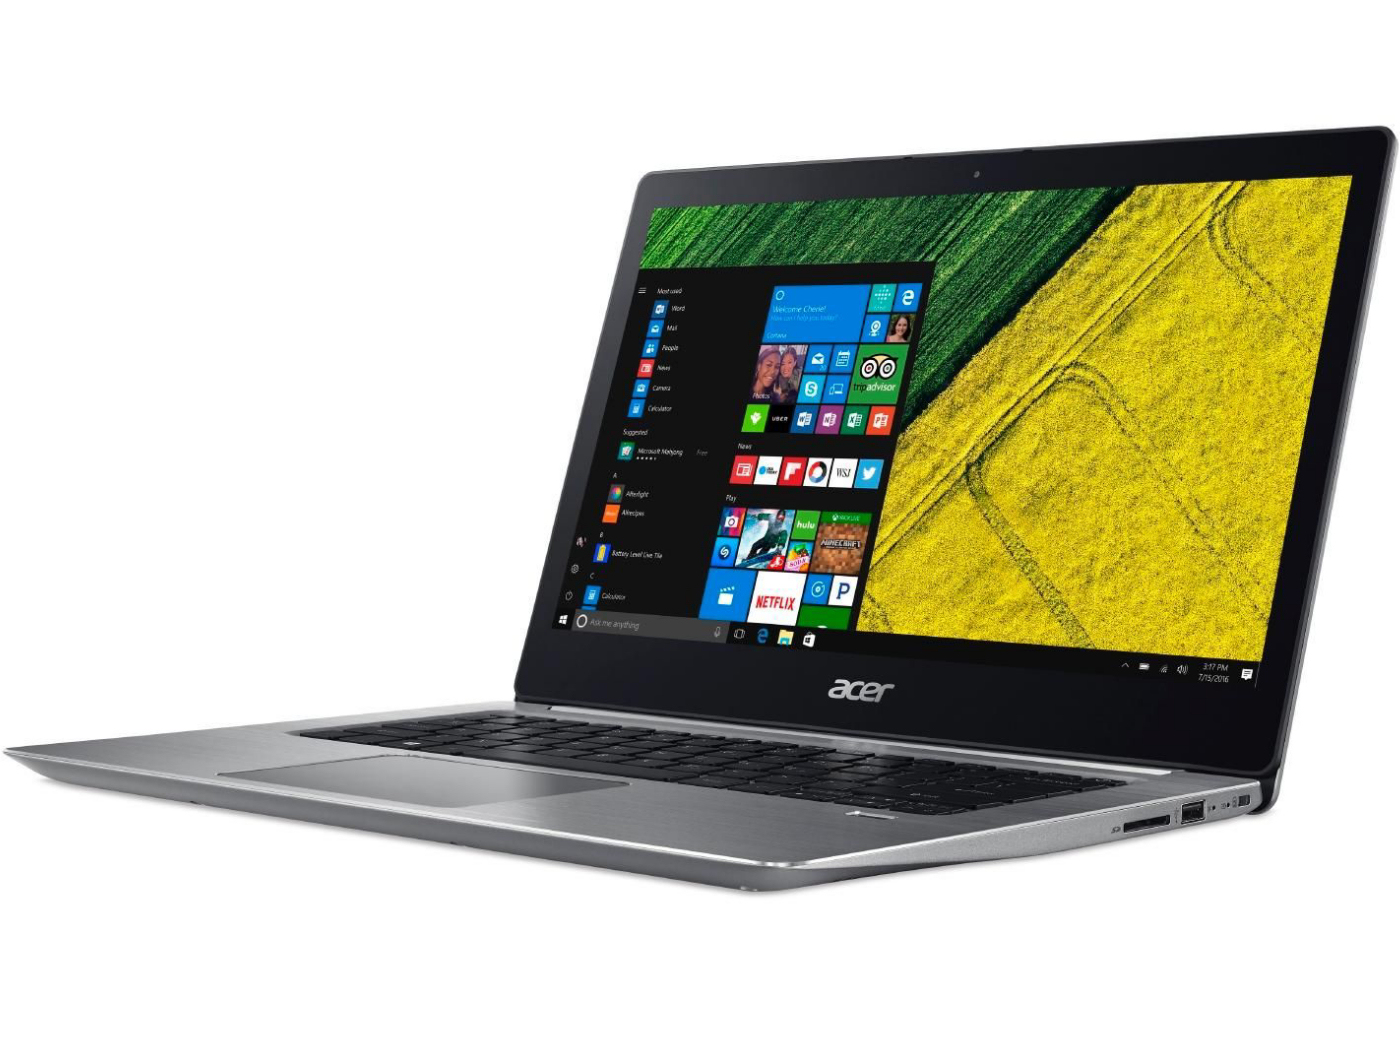 Acer Swift 3 Sf315 8250u Mx150 Fhd Laptop Review Notebookcheck Front Panel Wiring Issue Solved Components The 51g 57e5 Courtesy Of Cyberport